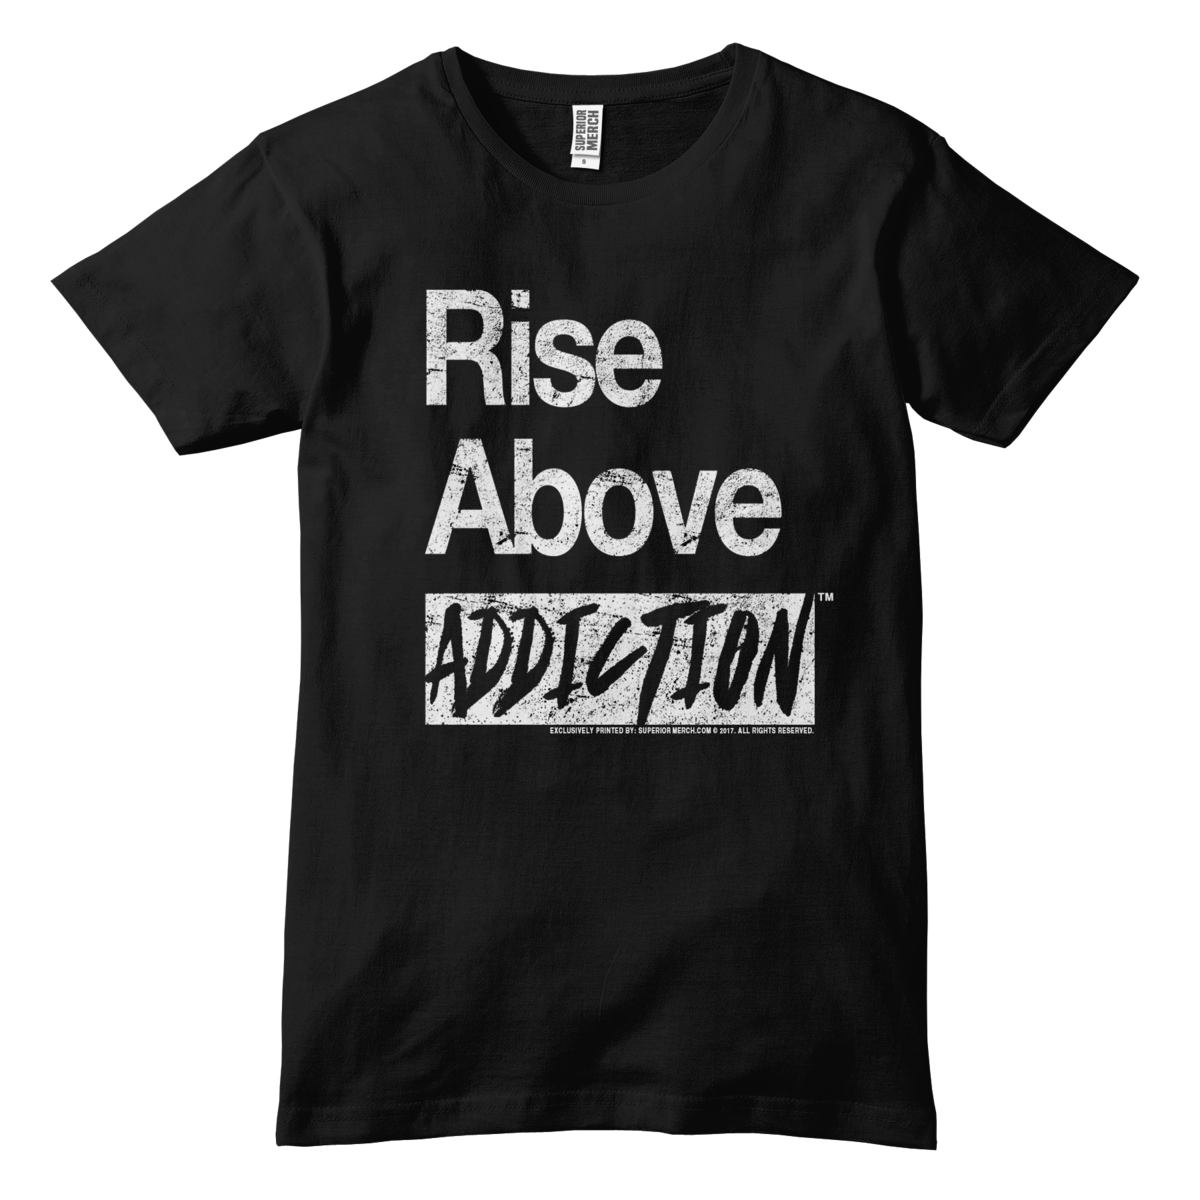 Rise Above Addiction T-Shirt Campaign